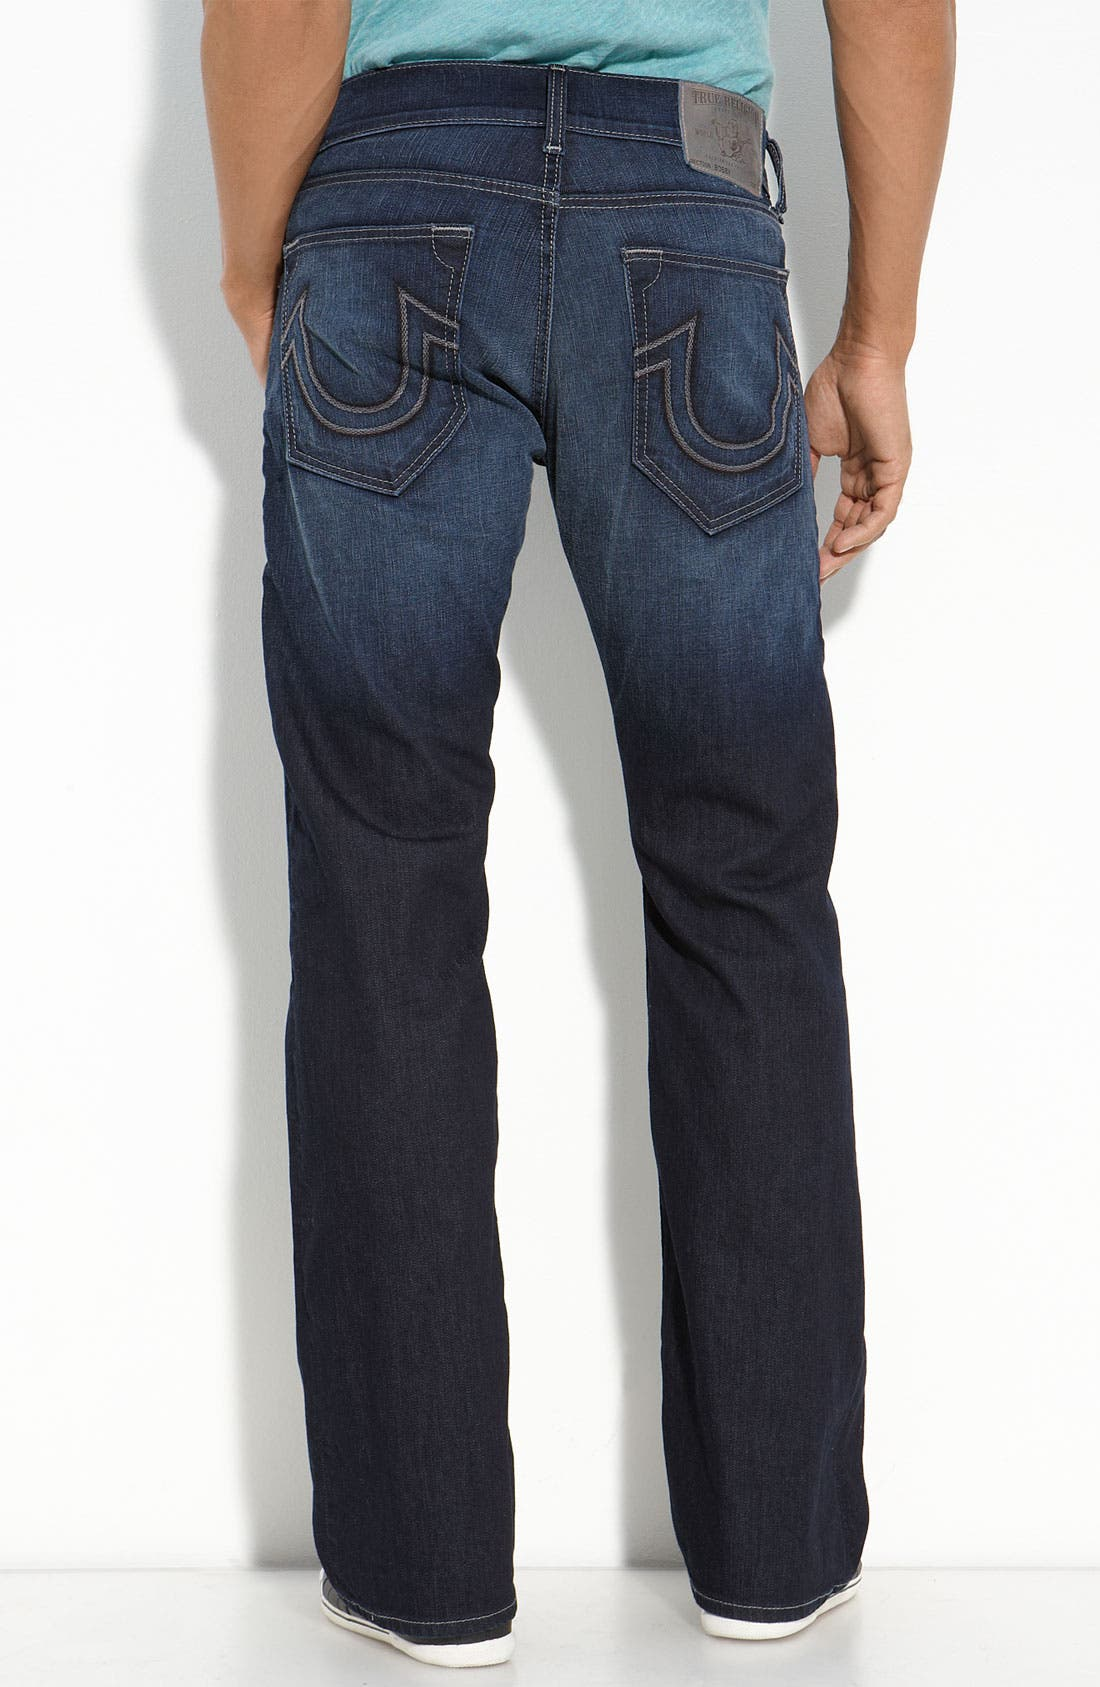 Alternate Image 1 Selected - True Religion Brand Jeans 'Danny' Bootcut Jeans (Franklin)